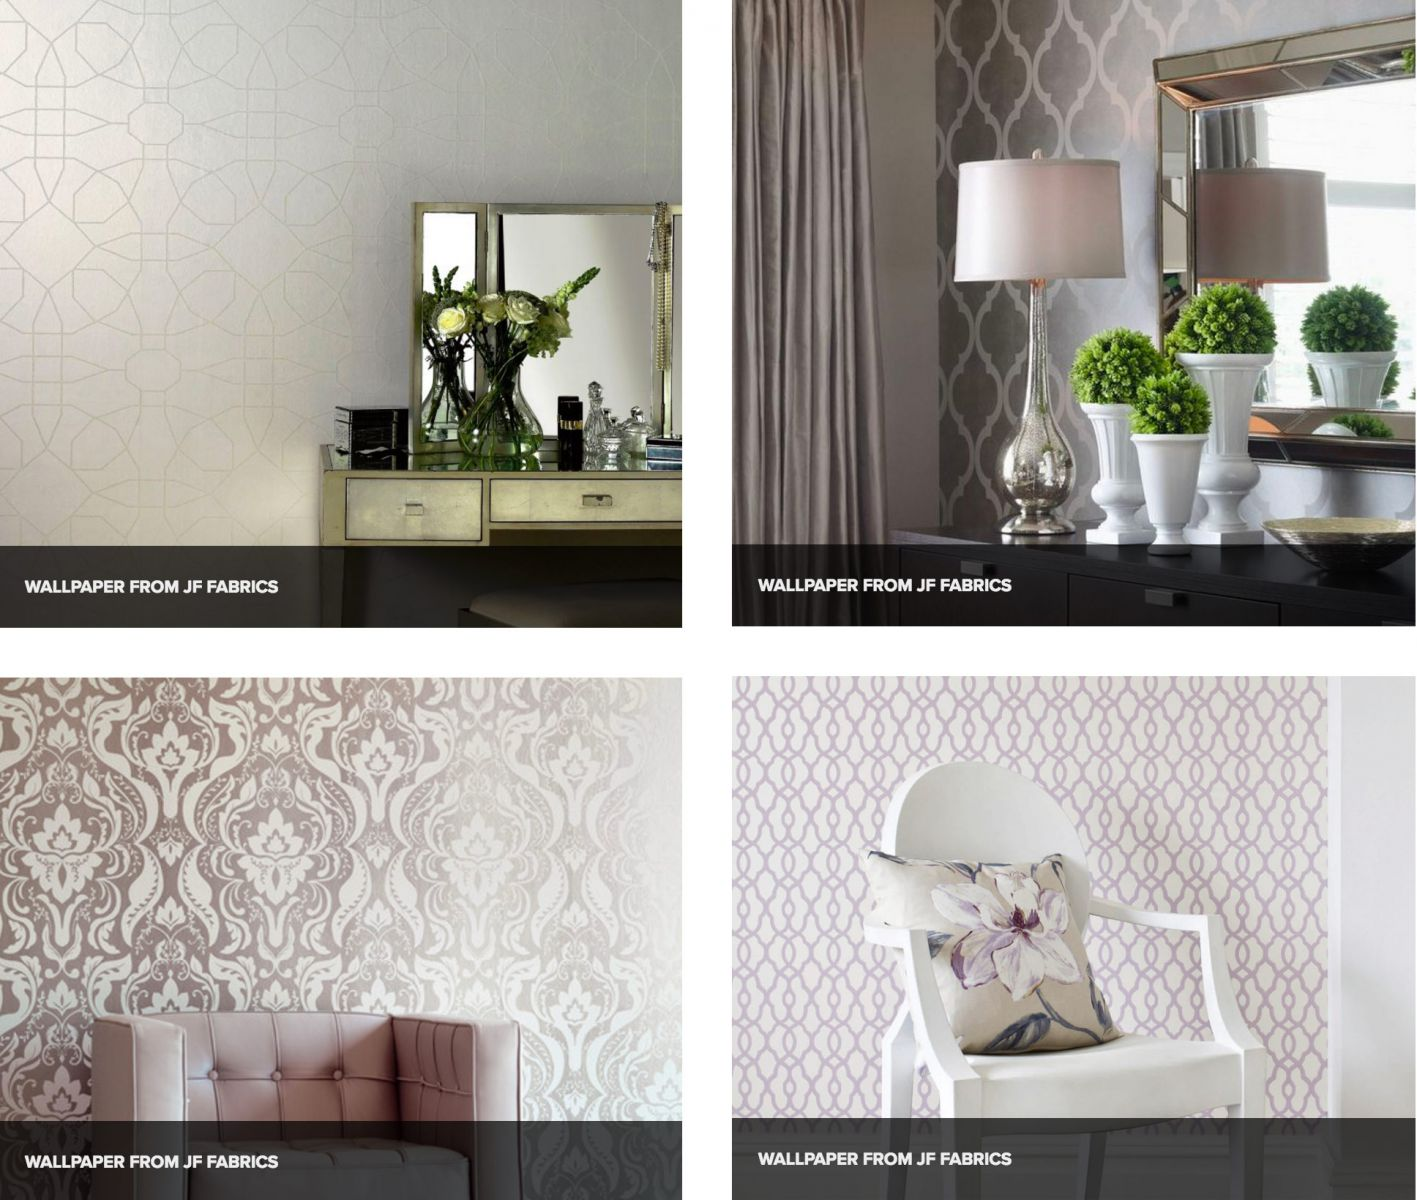 Modern Wallpaper Designs in Southlake, TX